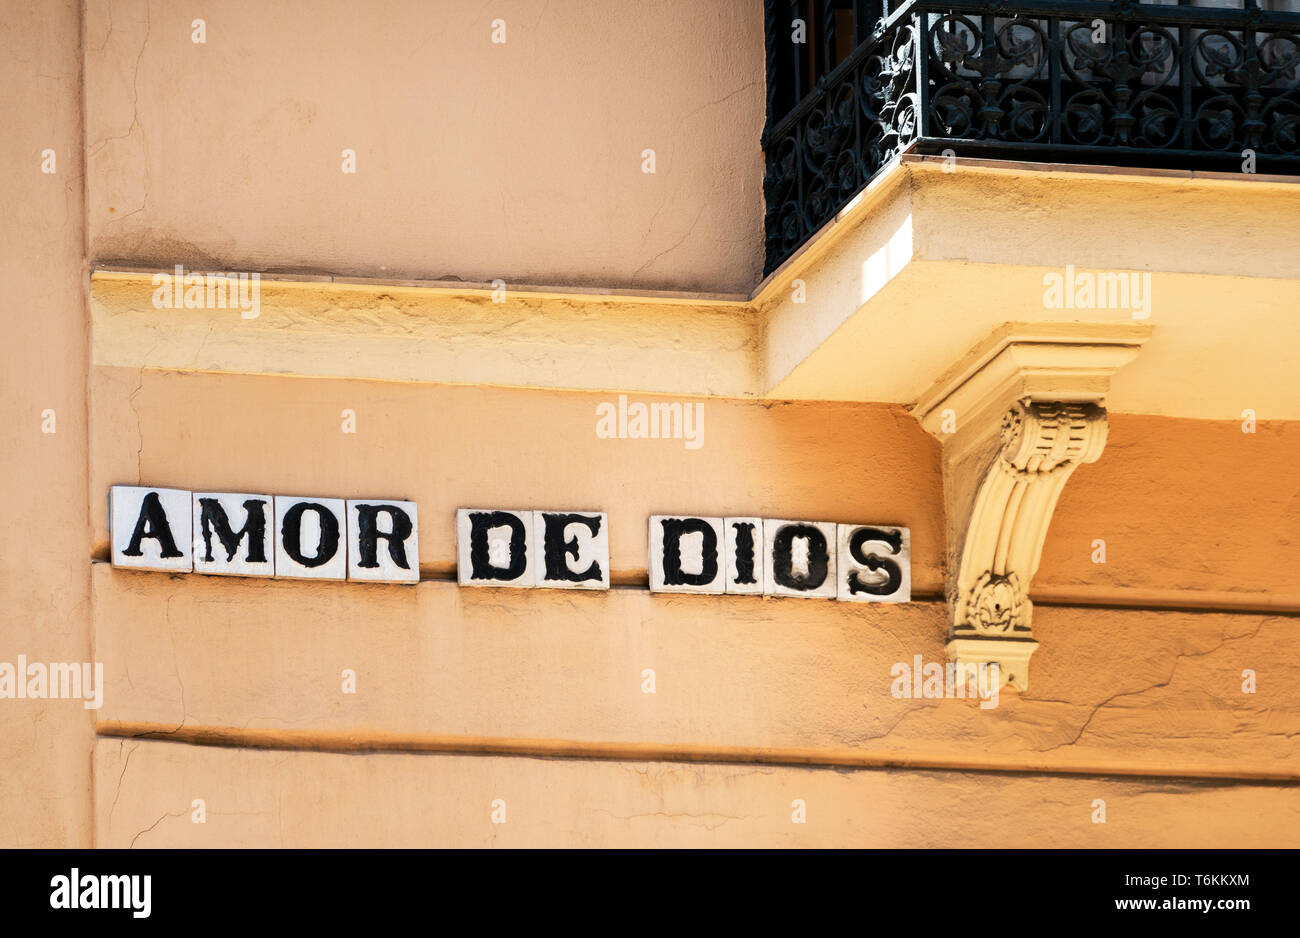 Street sign on the side of a building in Seville, Amor de Dios. The street name means Love of God - Stock Image